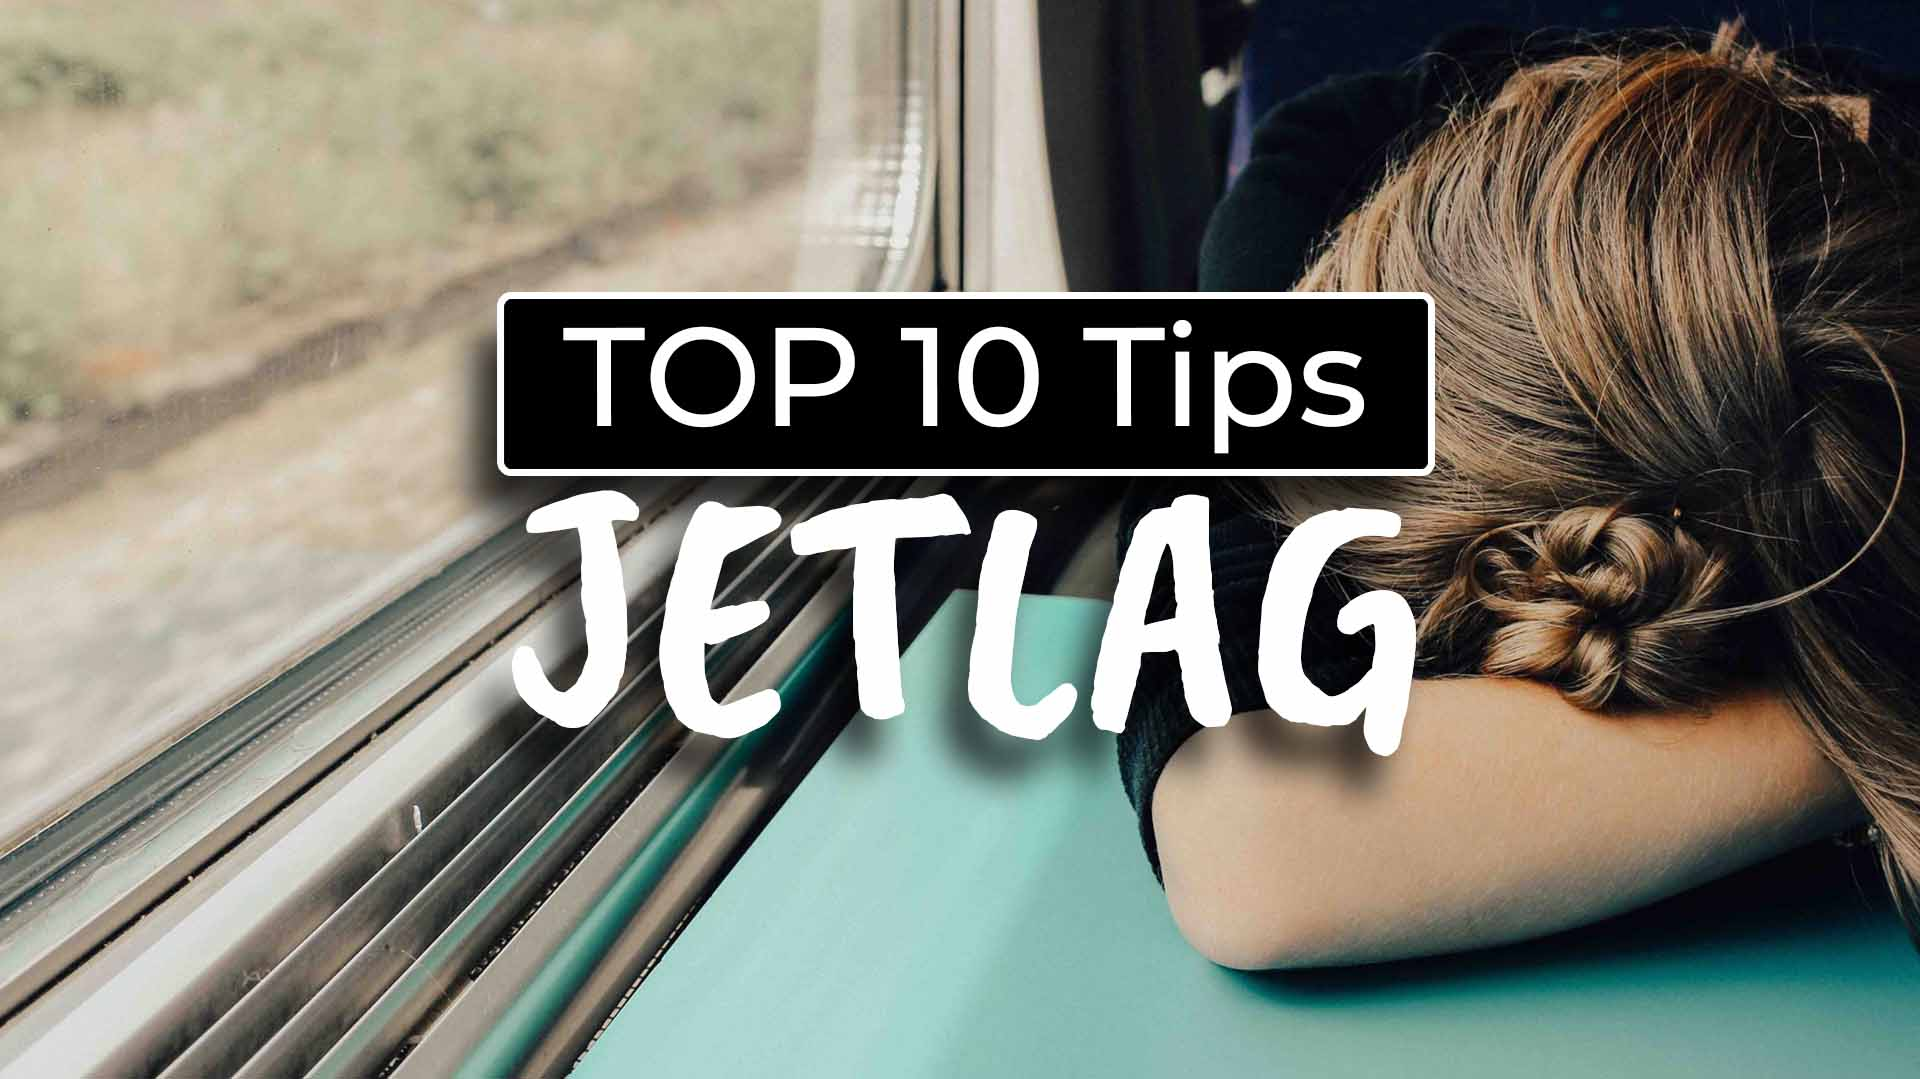 Top 10 Tips to avoid Jet lag - Cover